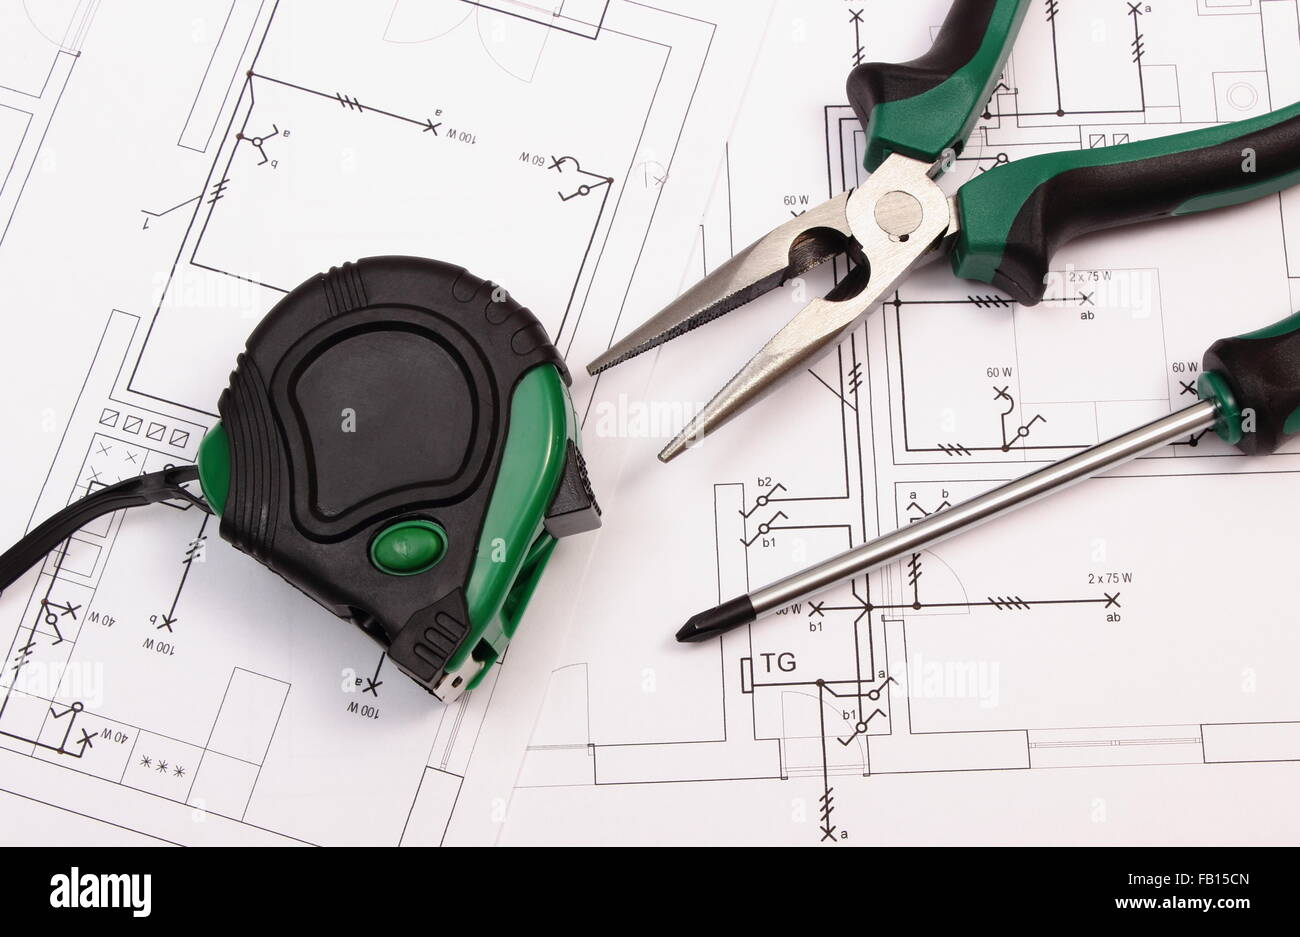 Metal pliers screwdriver and tape measure on electrical metal pliers screwdriver and tape measure on electrical construction drawing of house work tools ccuart Image collections